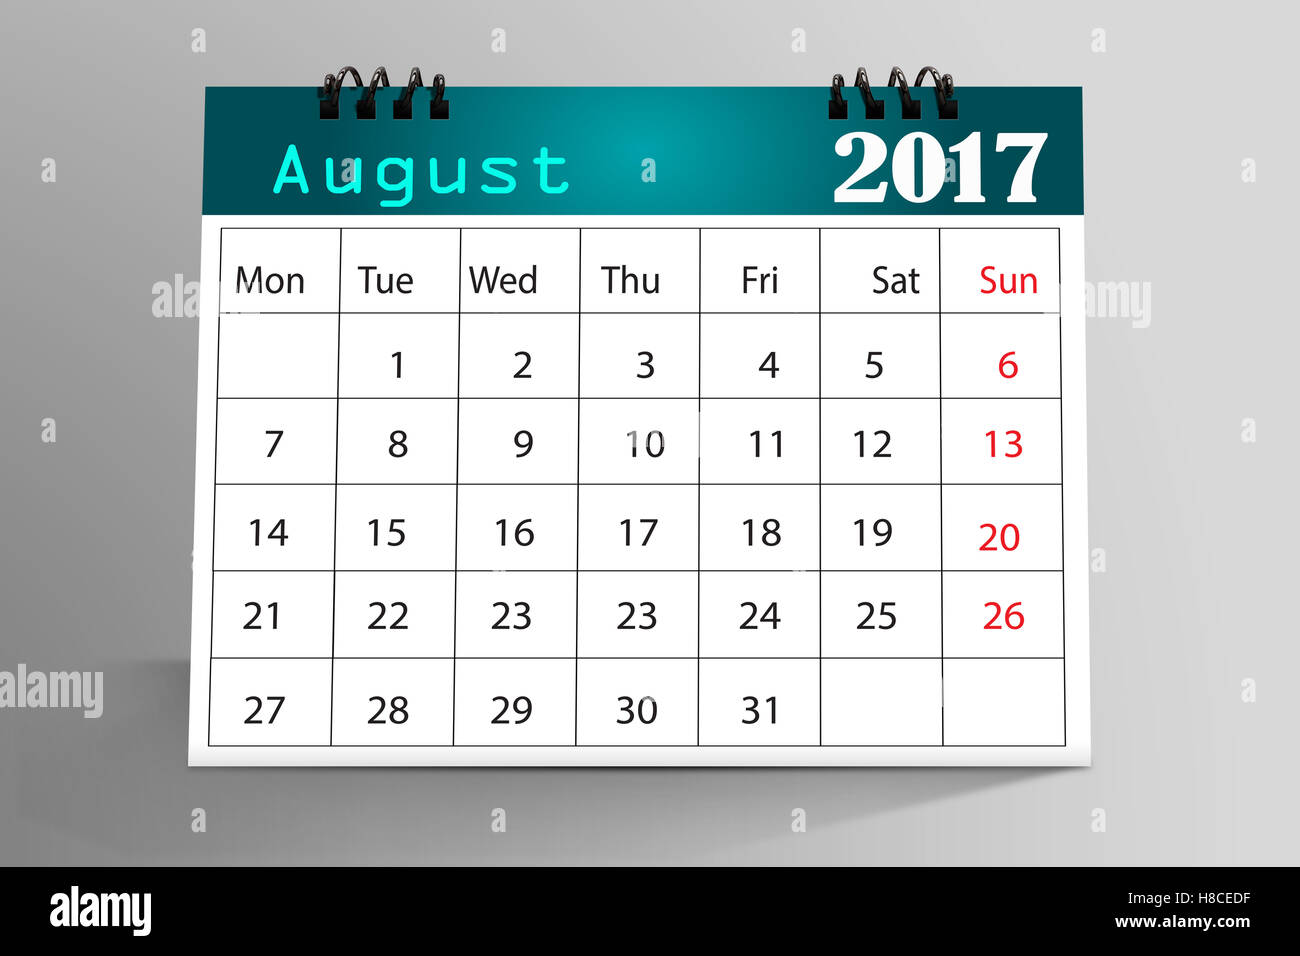 Calendar Design Desktop : Desktop calendar design august stock photo royalty